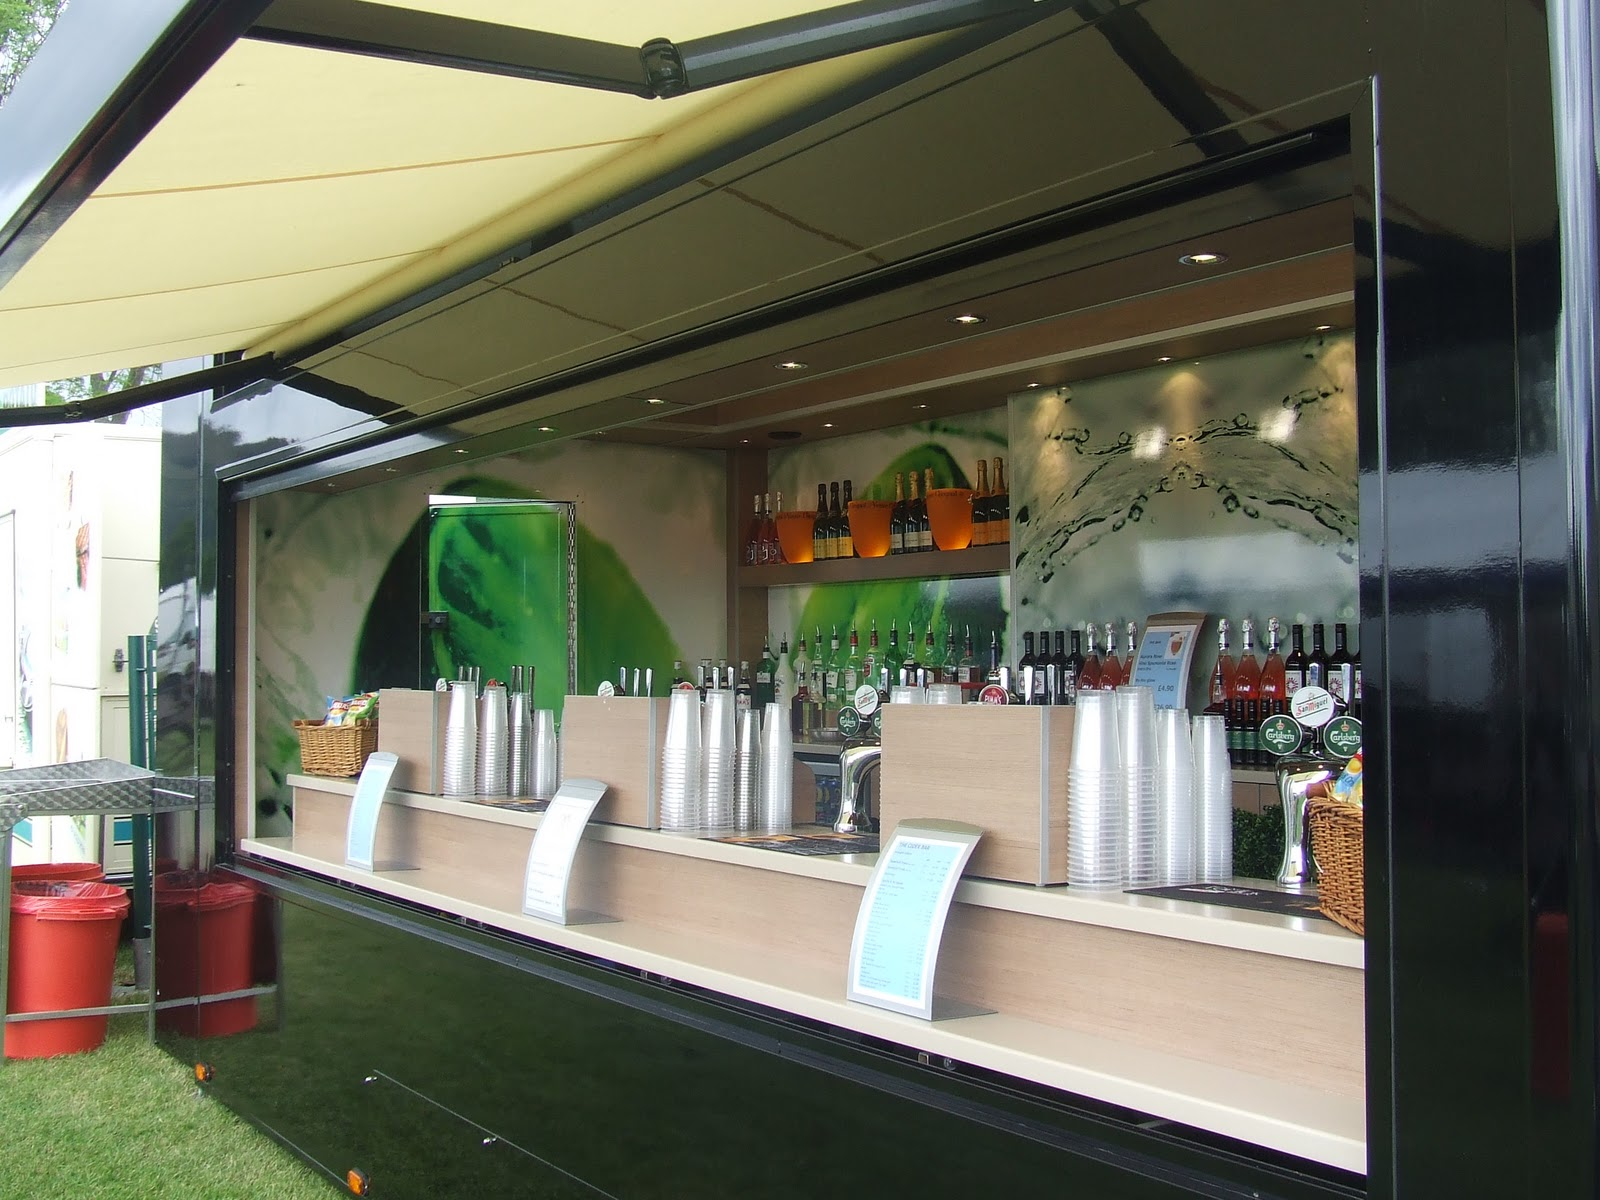 Edmund Evans Catering Trailers  Street Food Units and Mobile Bars Logistic solutions